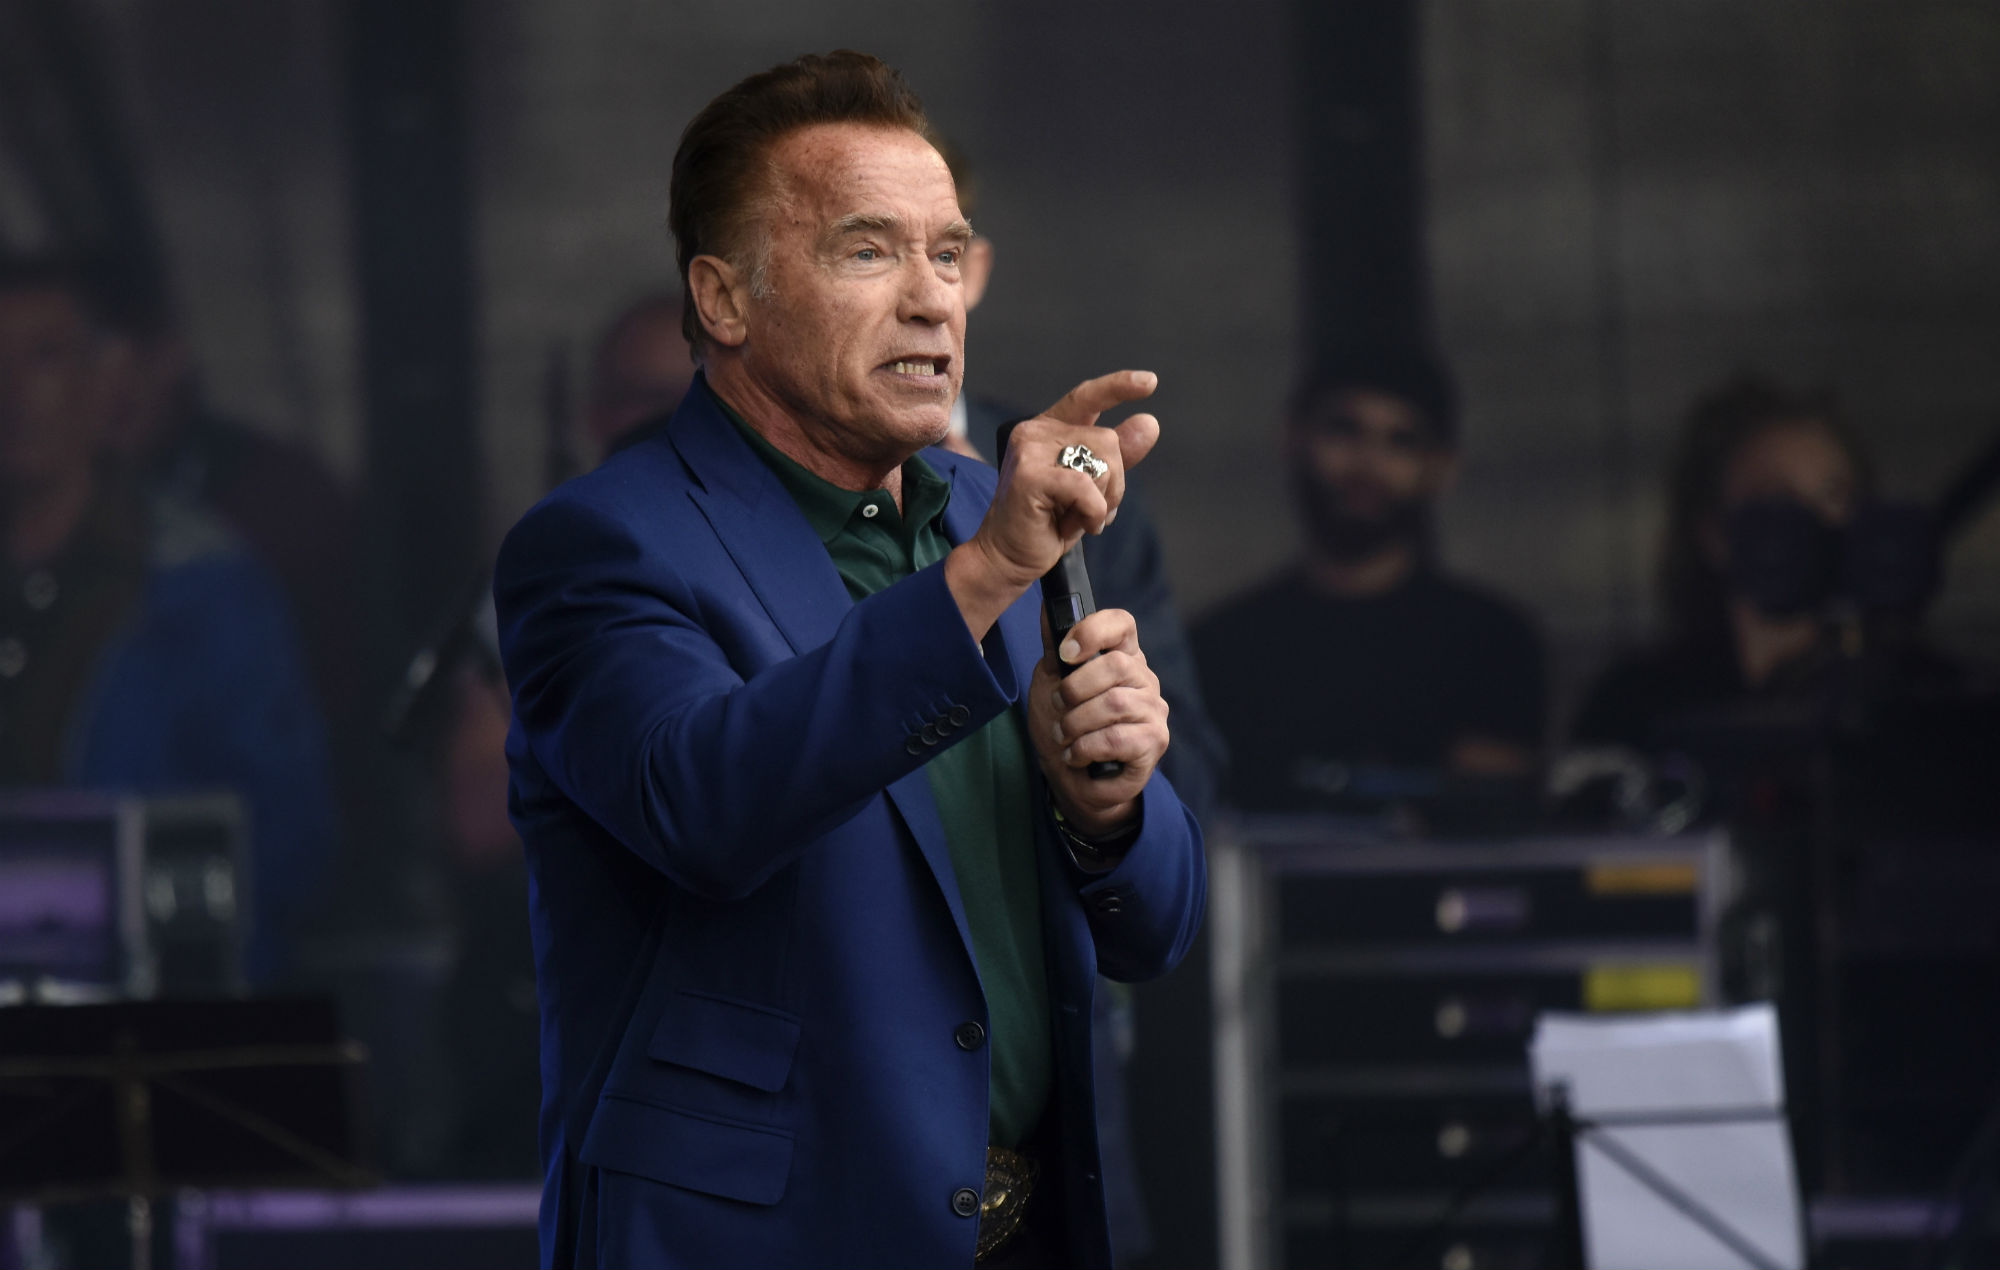 Arnold Schwarzenegger Is Getting His Own Show On Snapchat